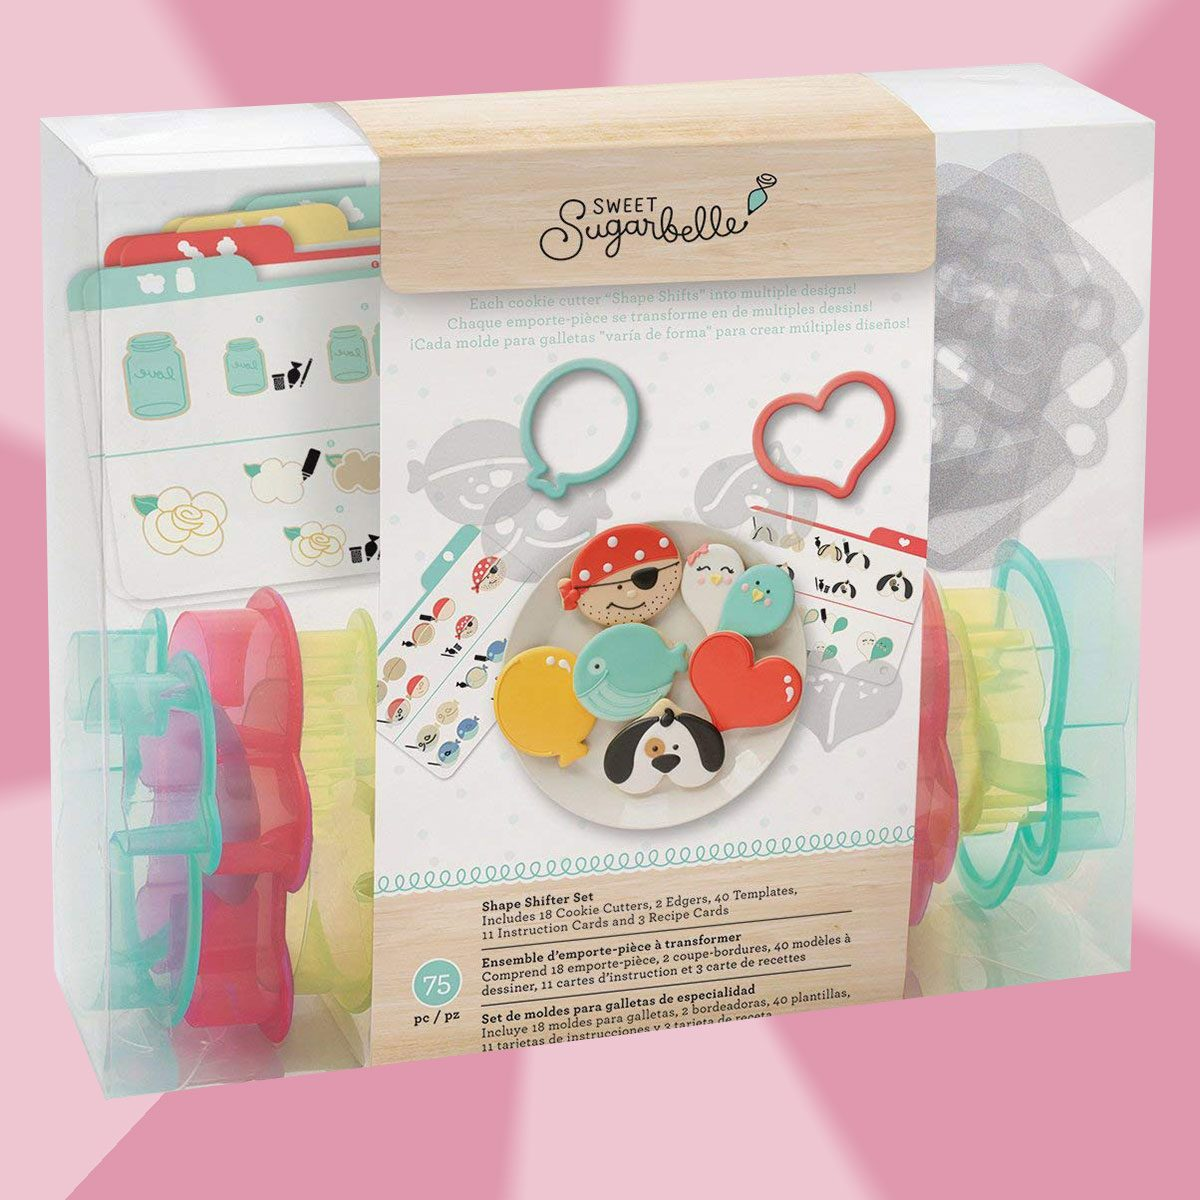 American Crafts Sweet Sugarbelle Cookie Cutter Shape Shifter Set